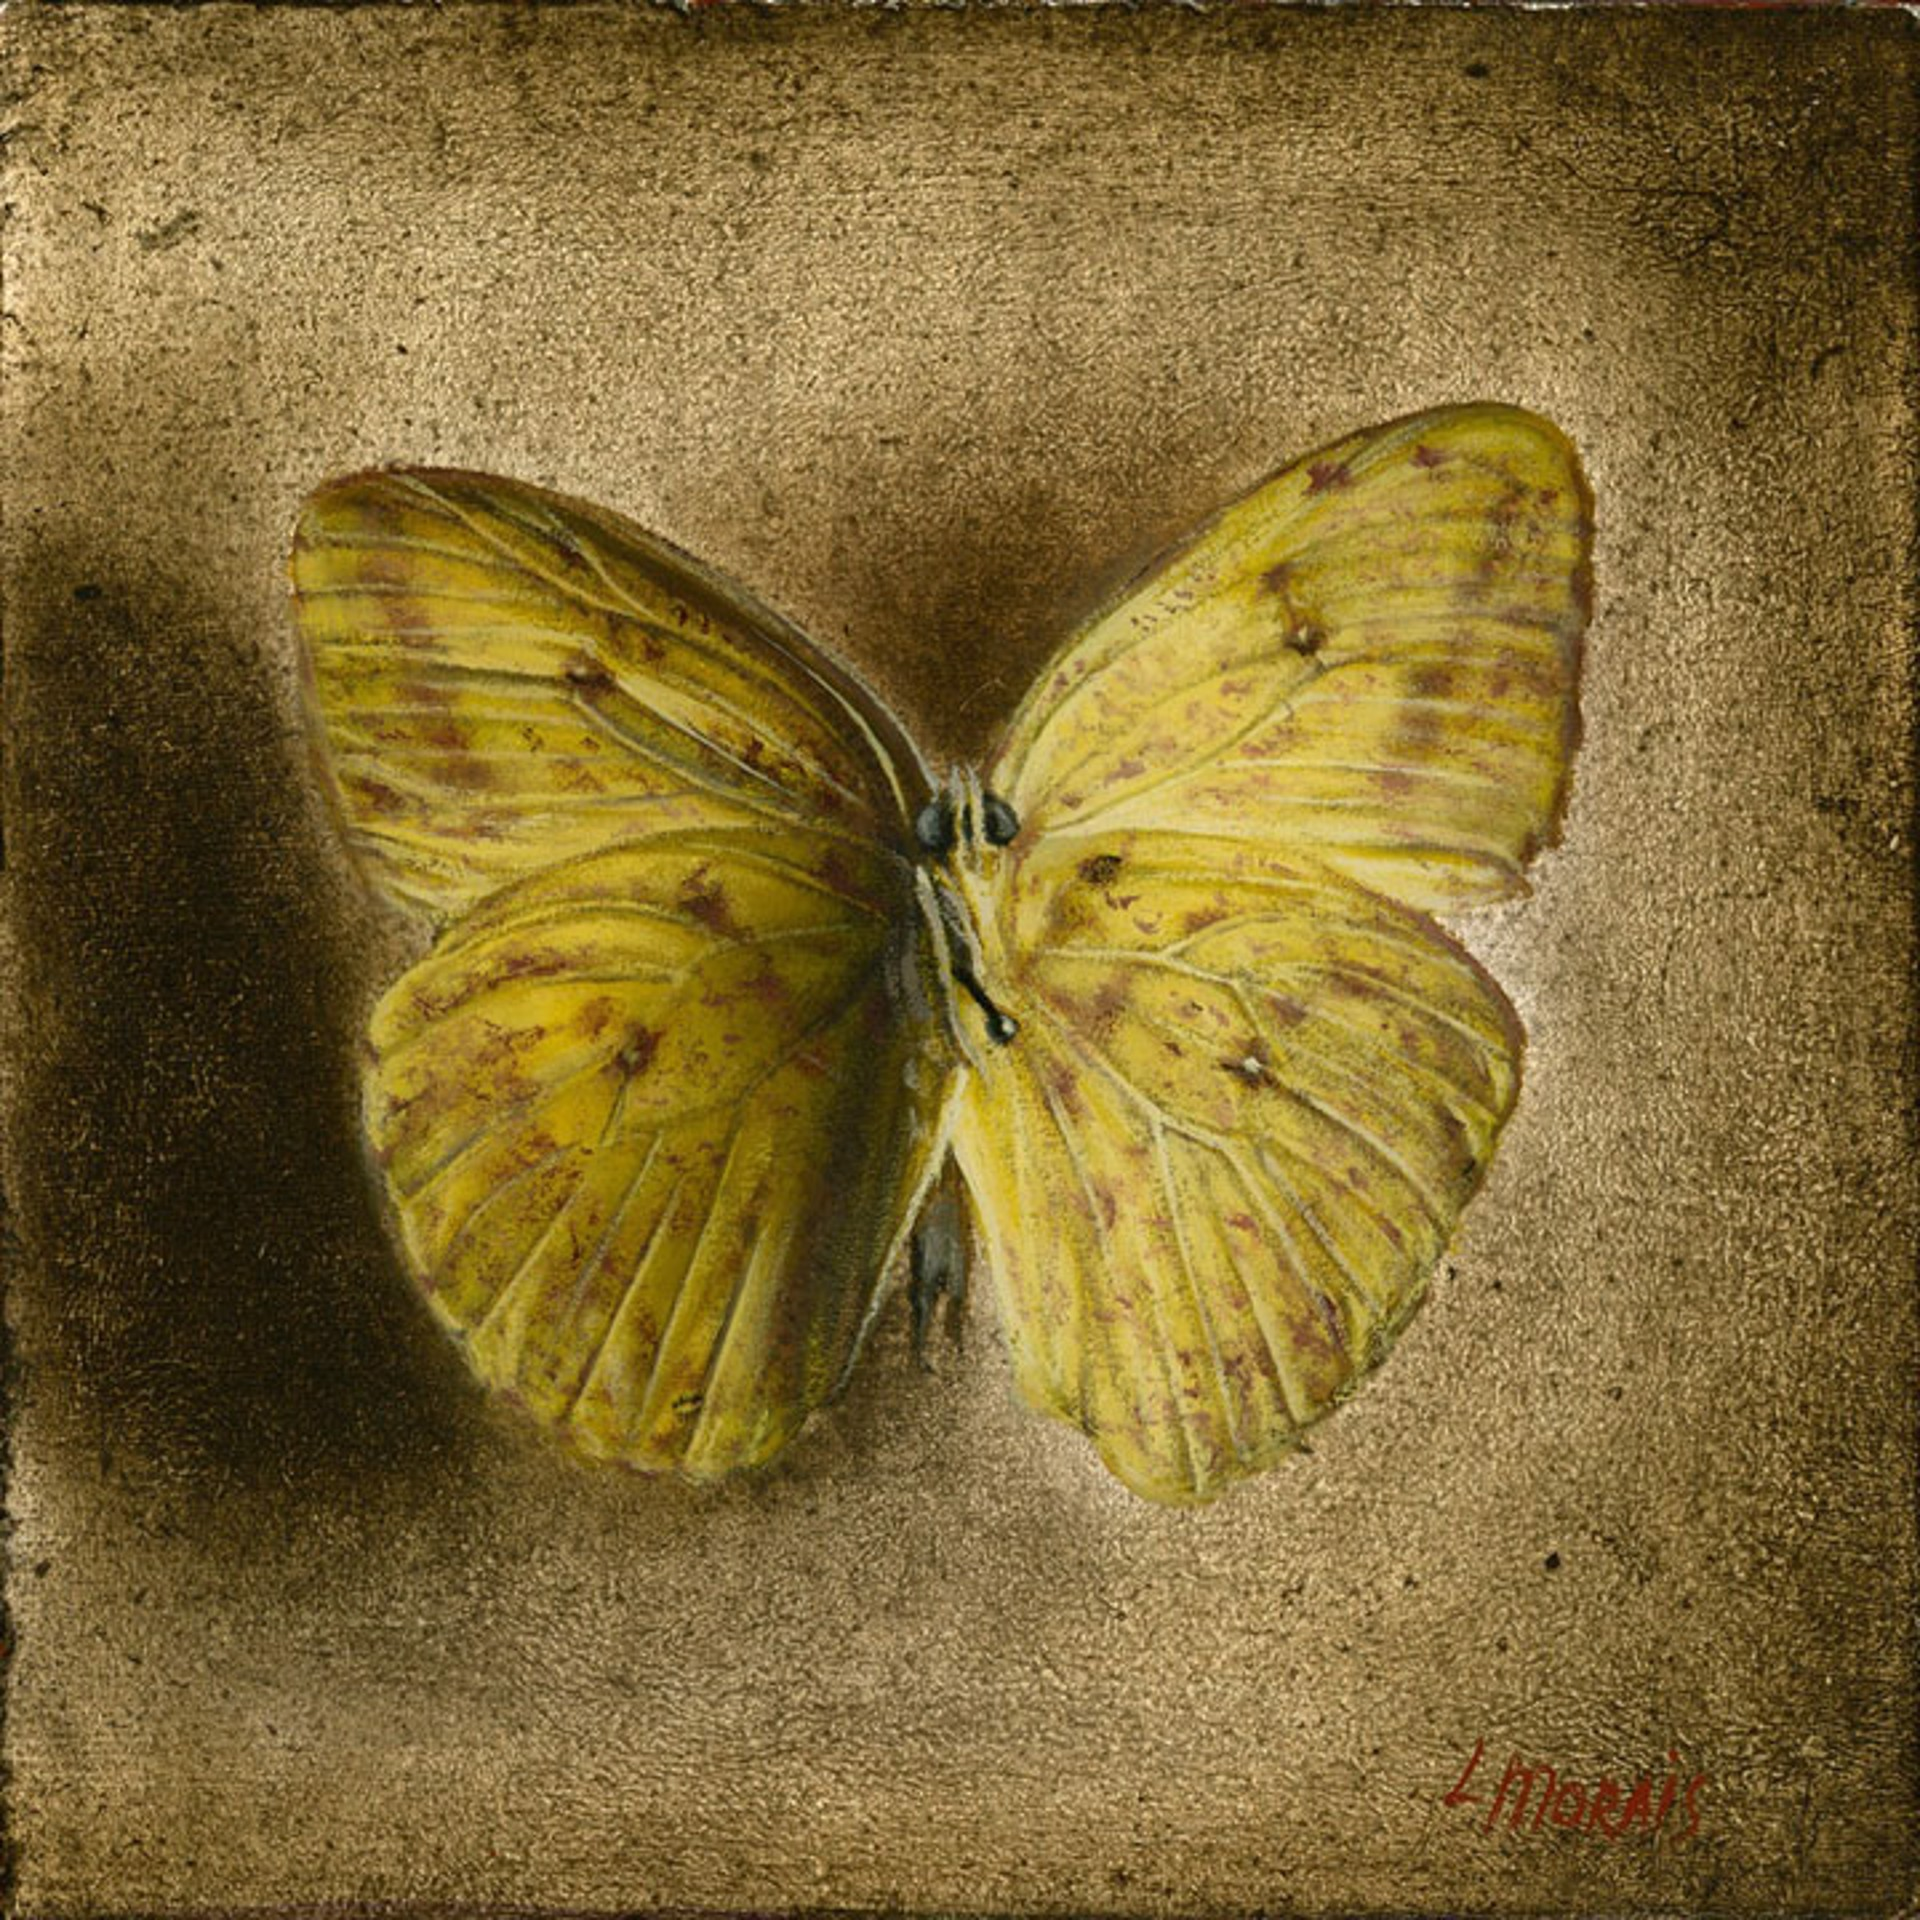 Yellow Butterfly (Shadowbox) by Larissa Morais